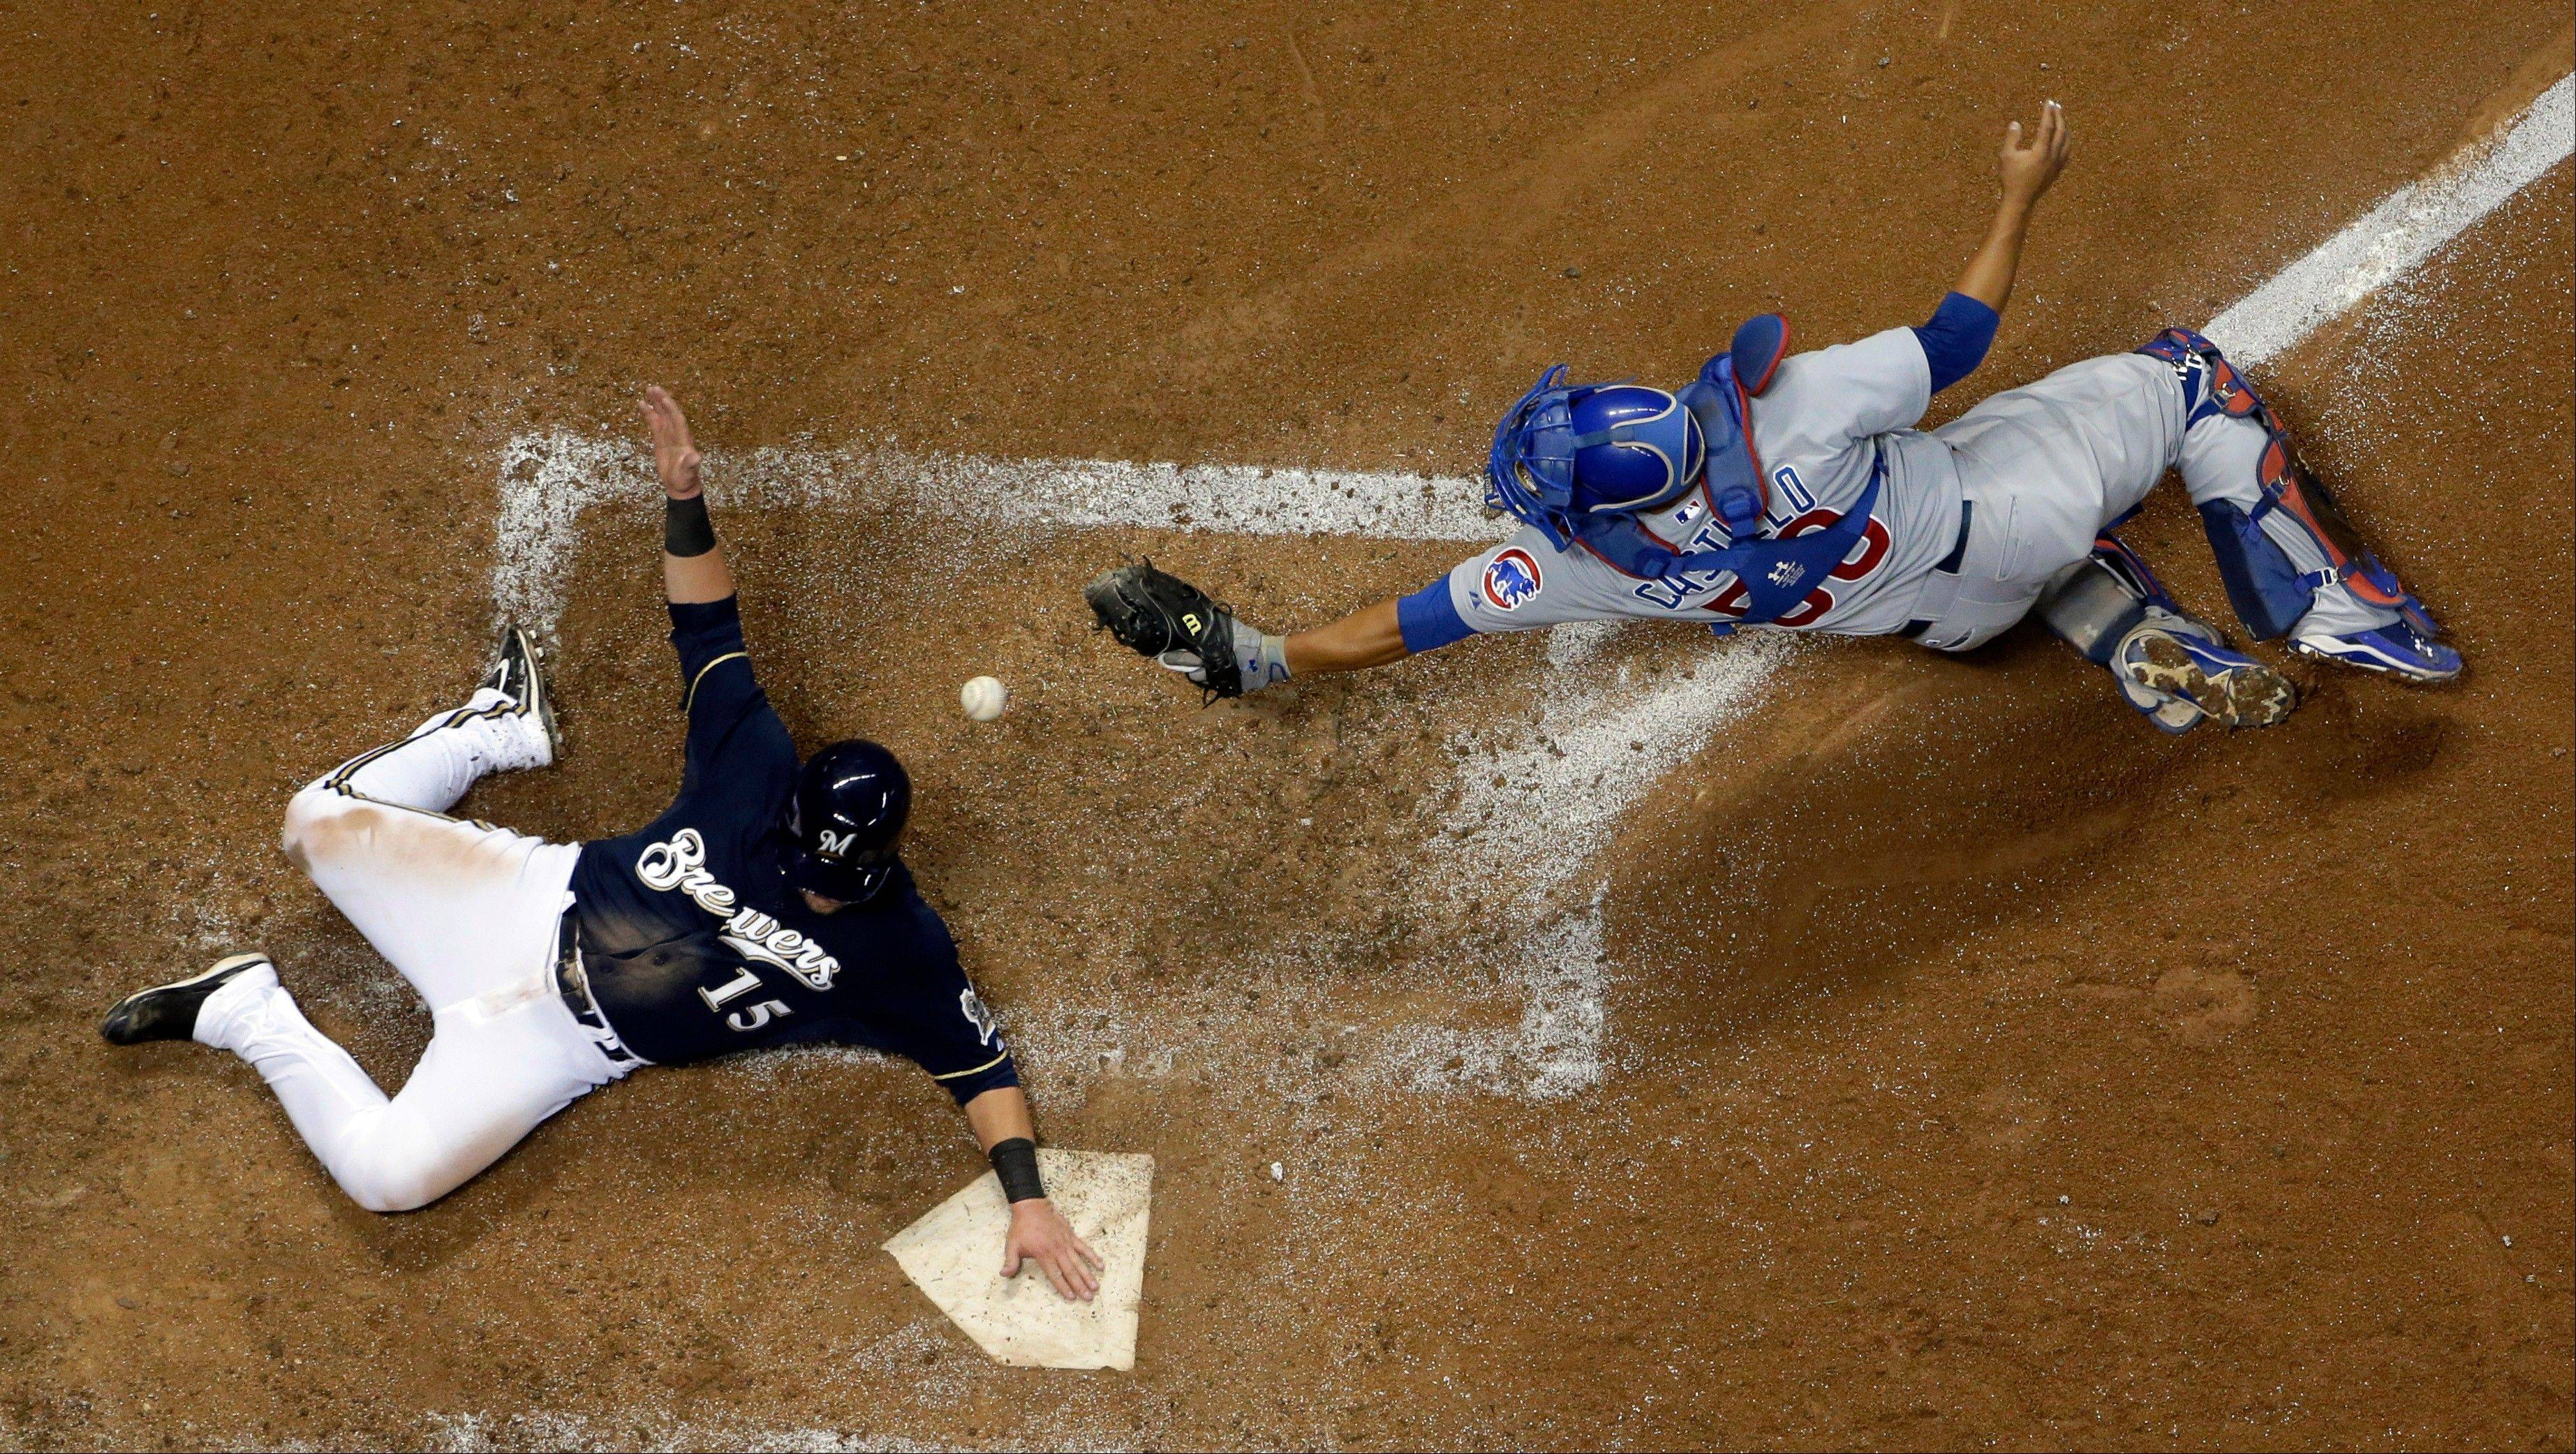 Milwaukee Brewers� Caleb Gindl slides safely past Chicago Cubs catcher Welington Castillo during the sixth inning of a baseball game, Monday, Sept. 16, 2013, in Milwaukee. Gindl scored from second on a hit by Yuniesky Betancourt.